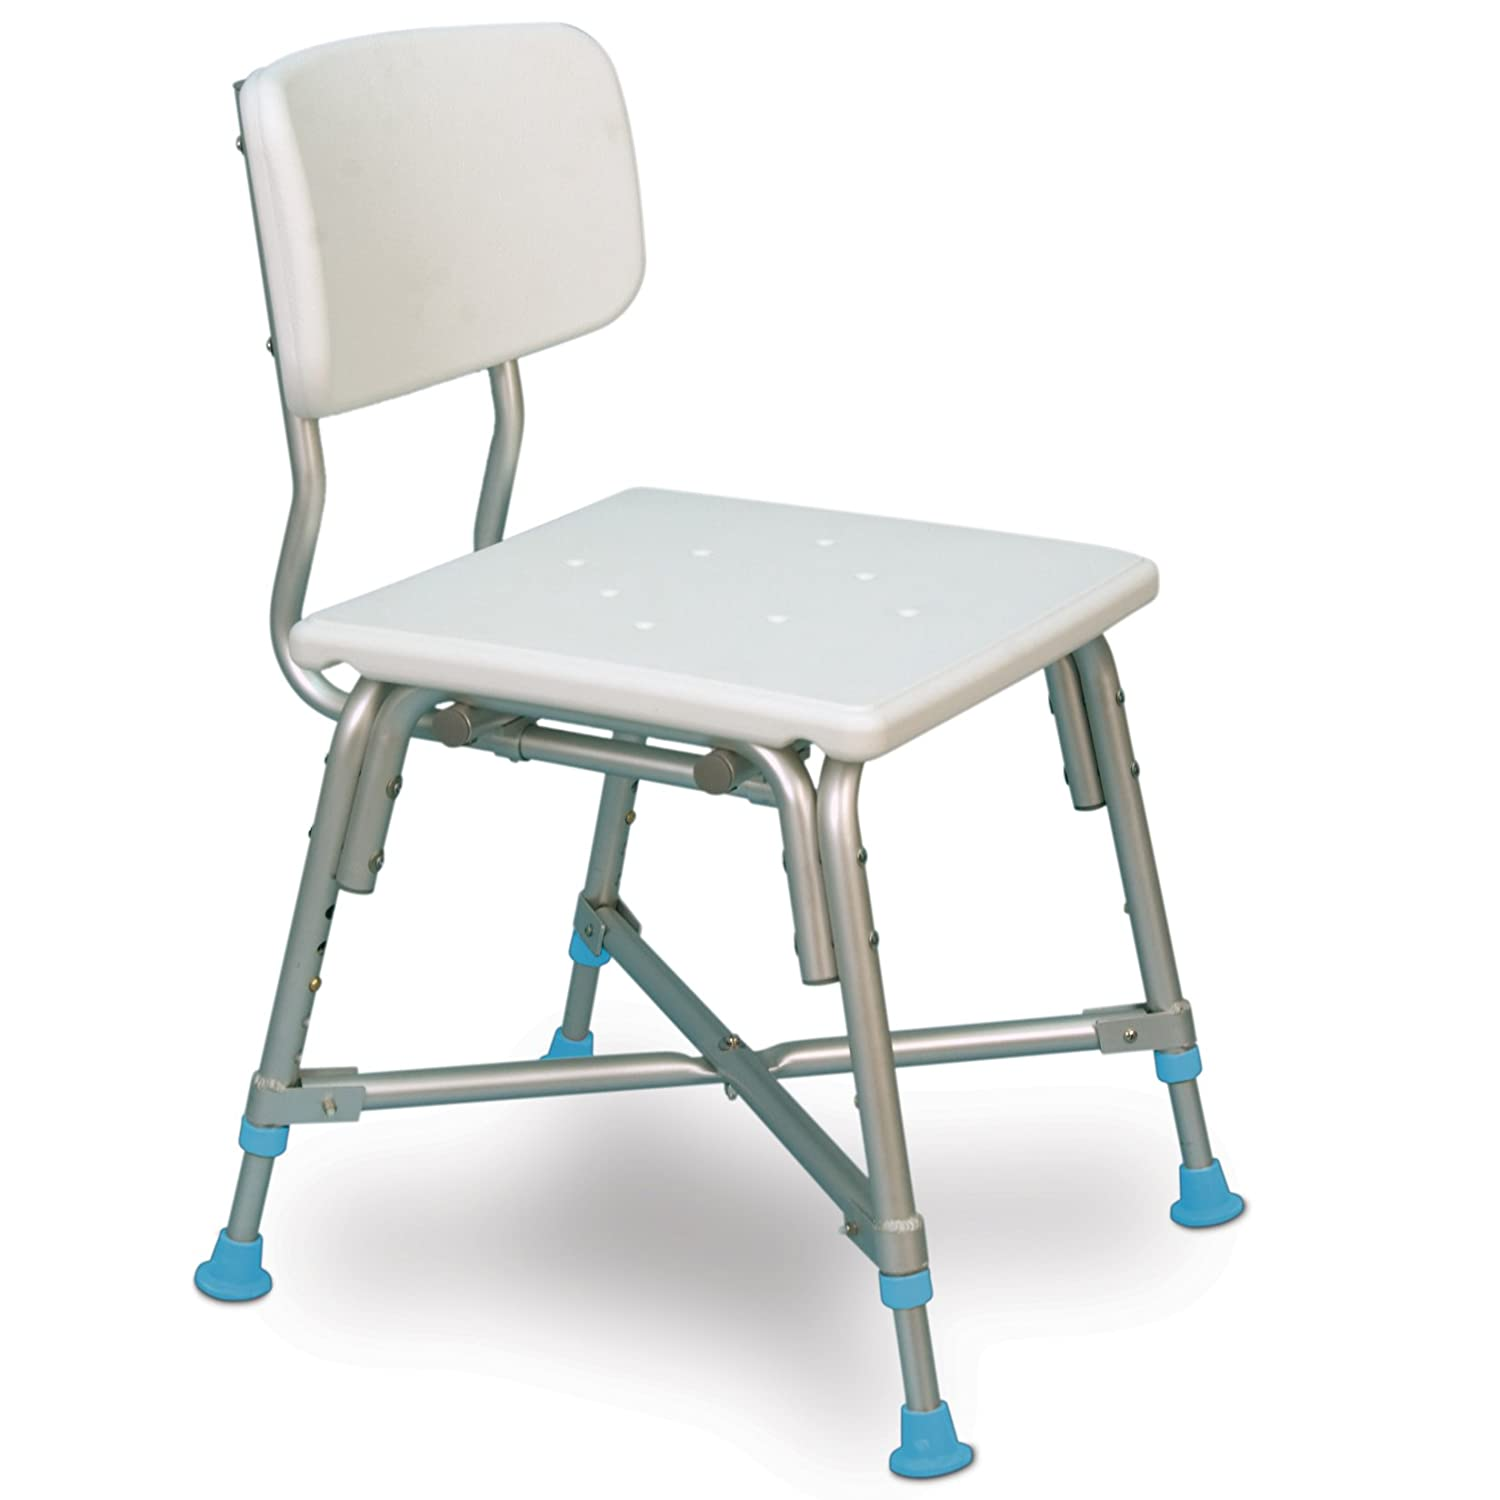 The Best Heavy Duty Shower Chairs For Overweight People | For Big ...